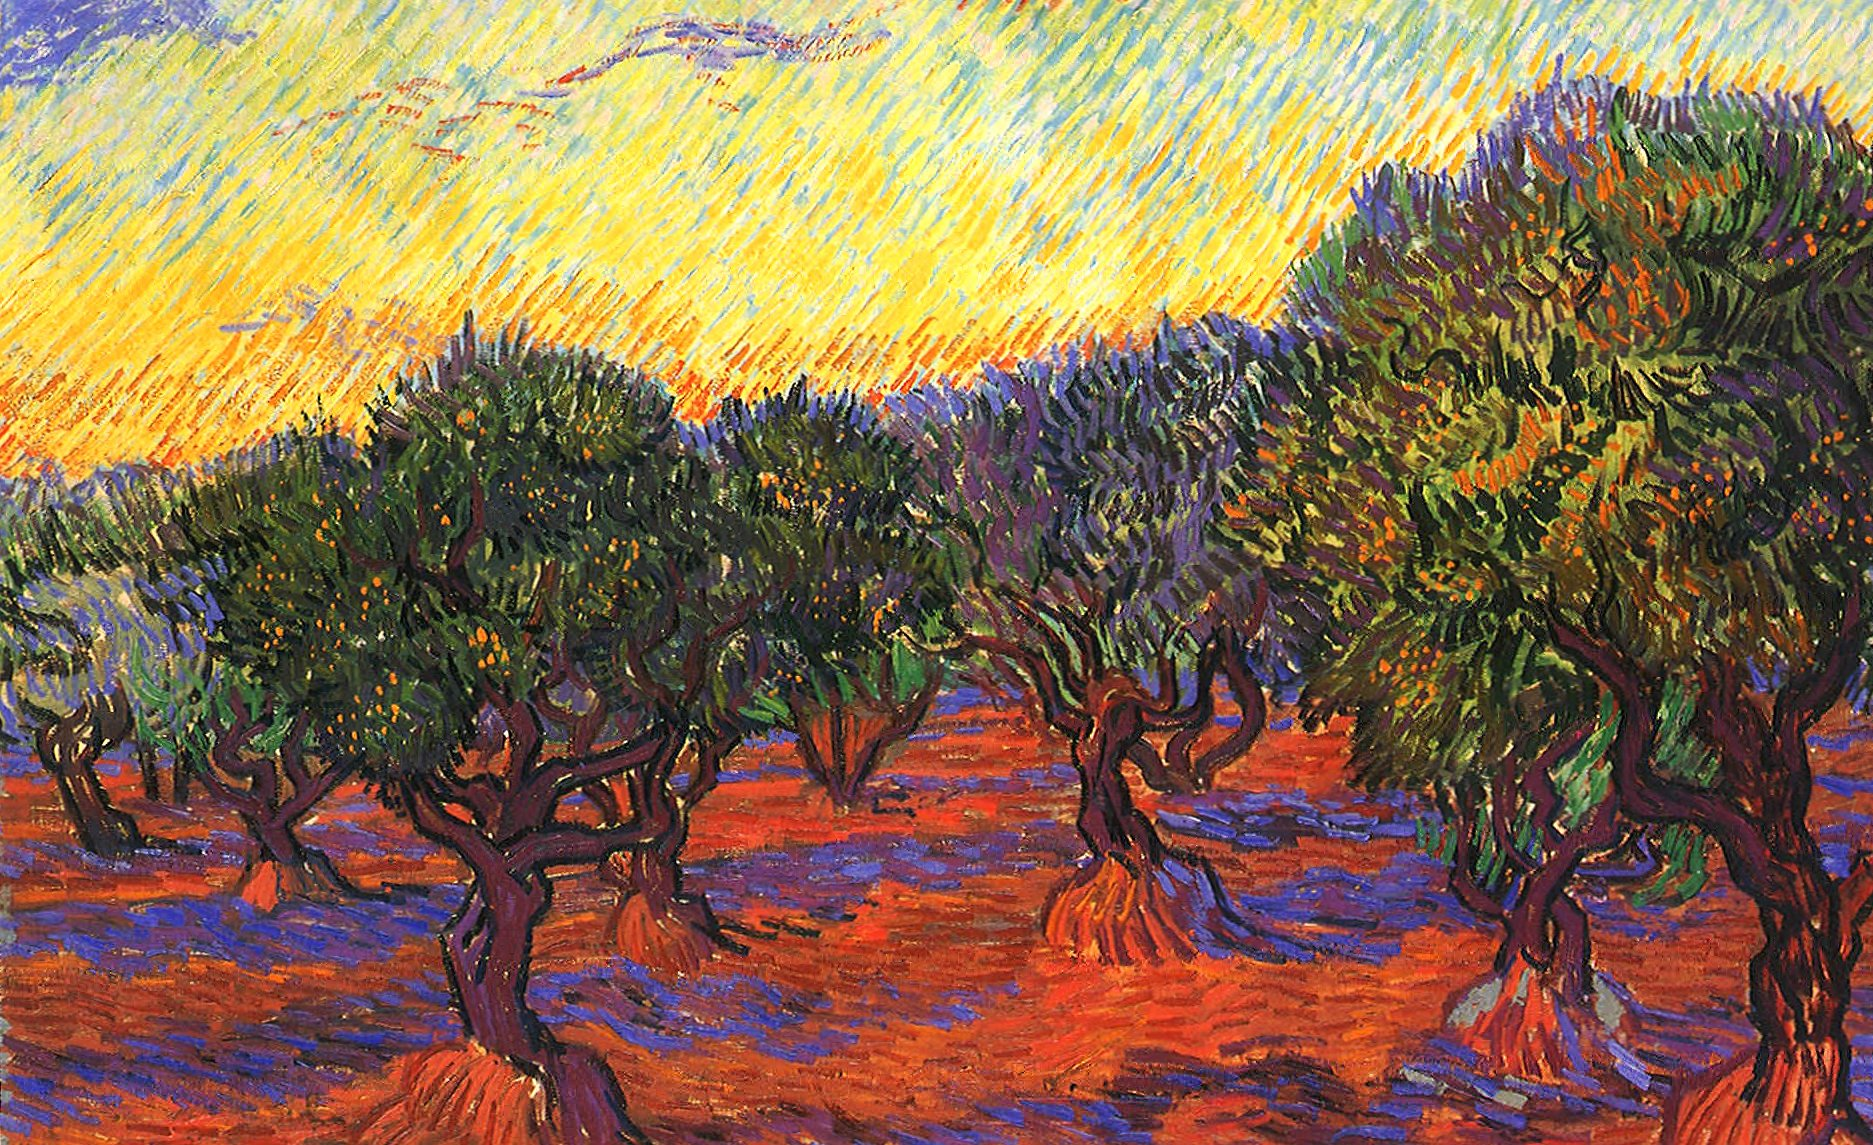 Vincent van gogh olive trees wallpapers HD quality